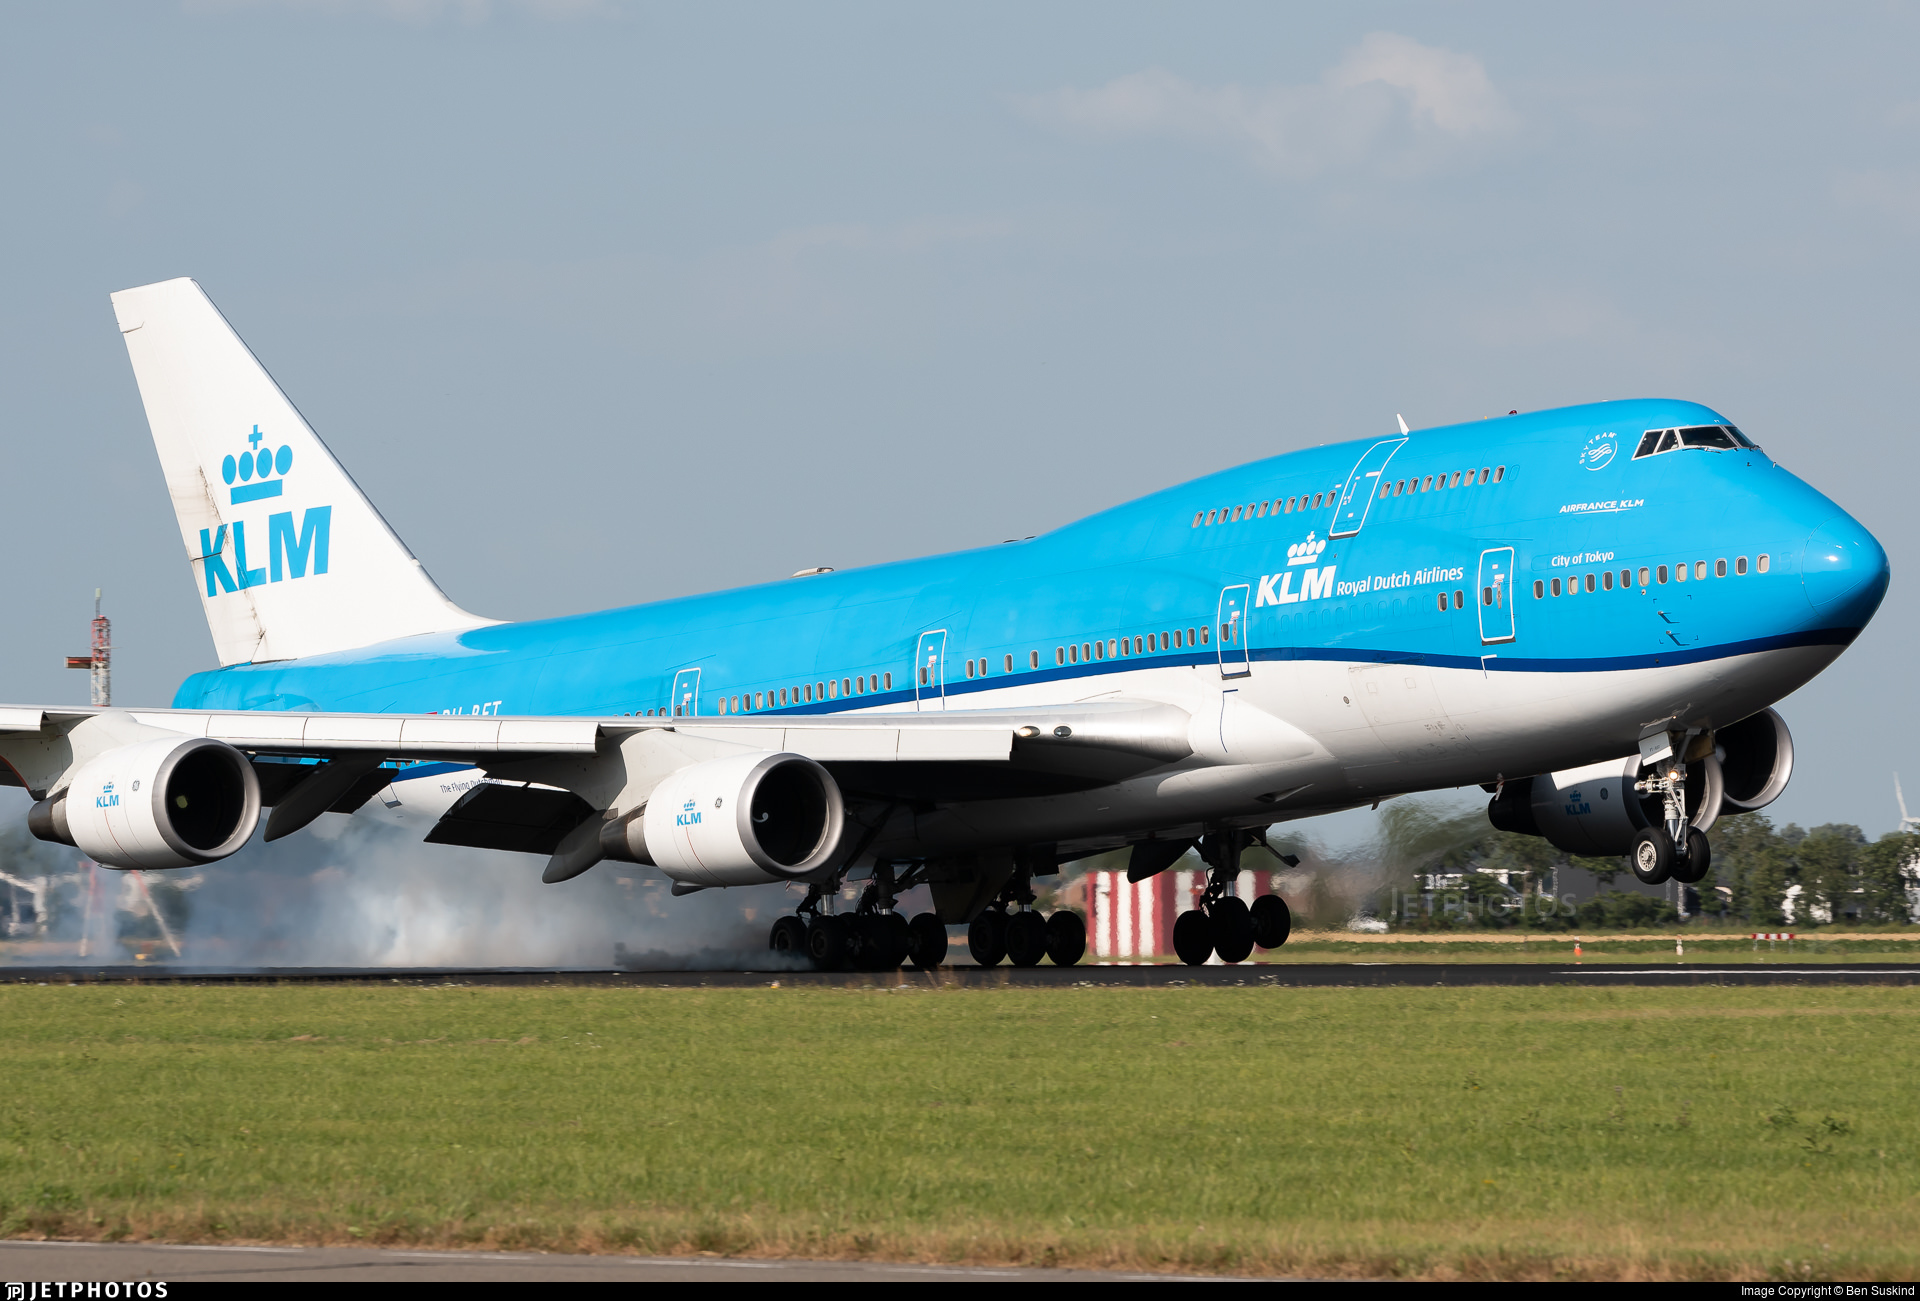 A KLM 747 touching down in Amsterdam